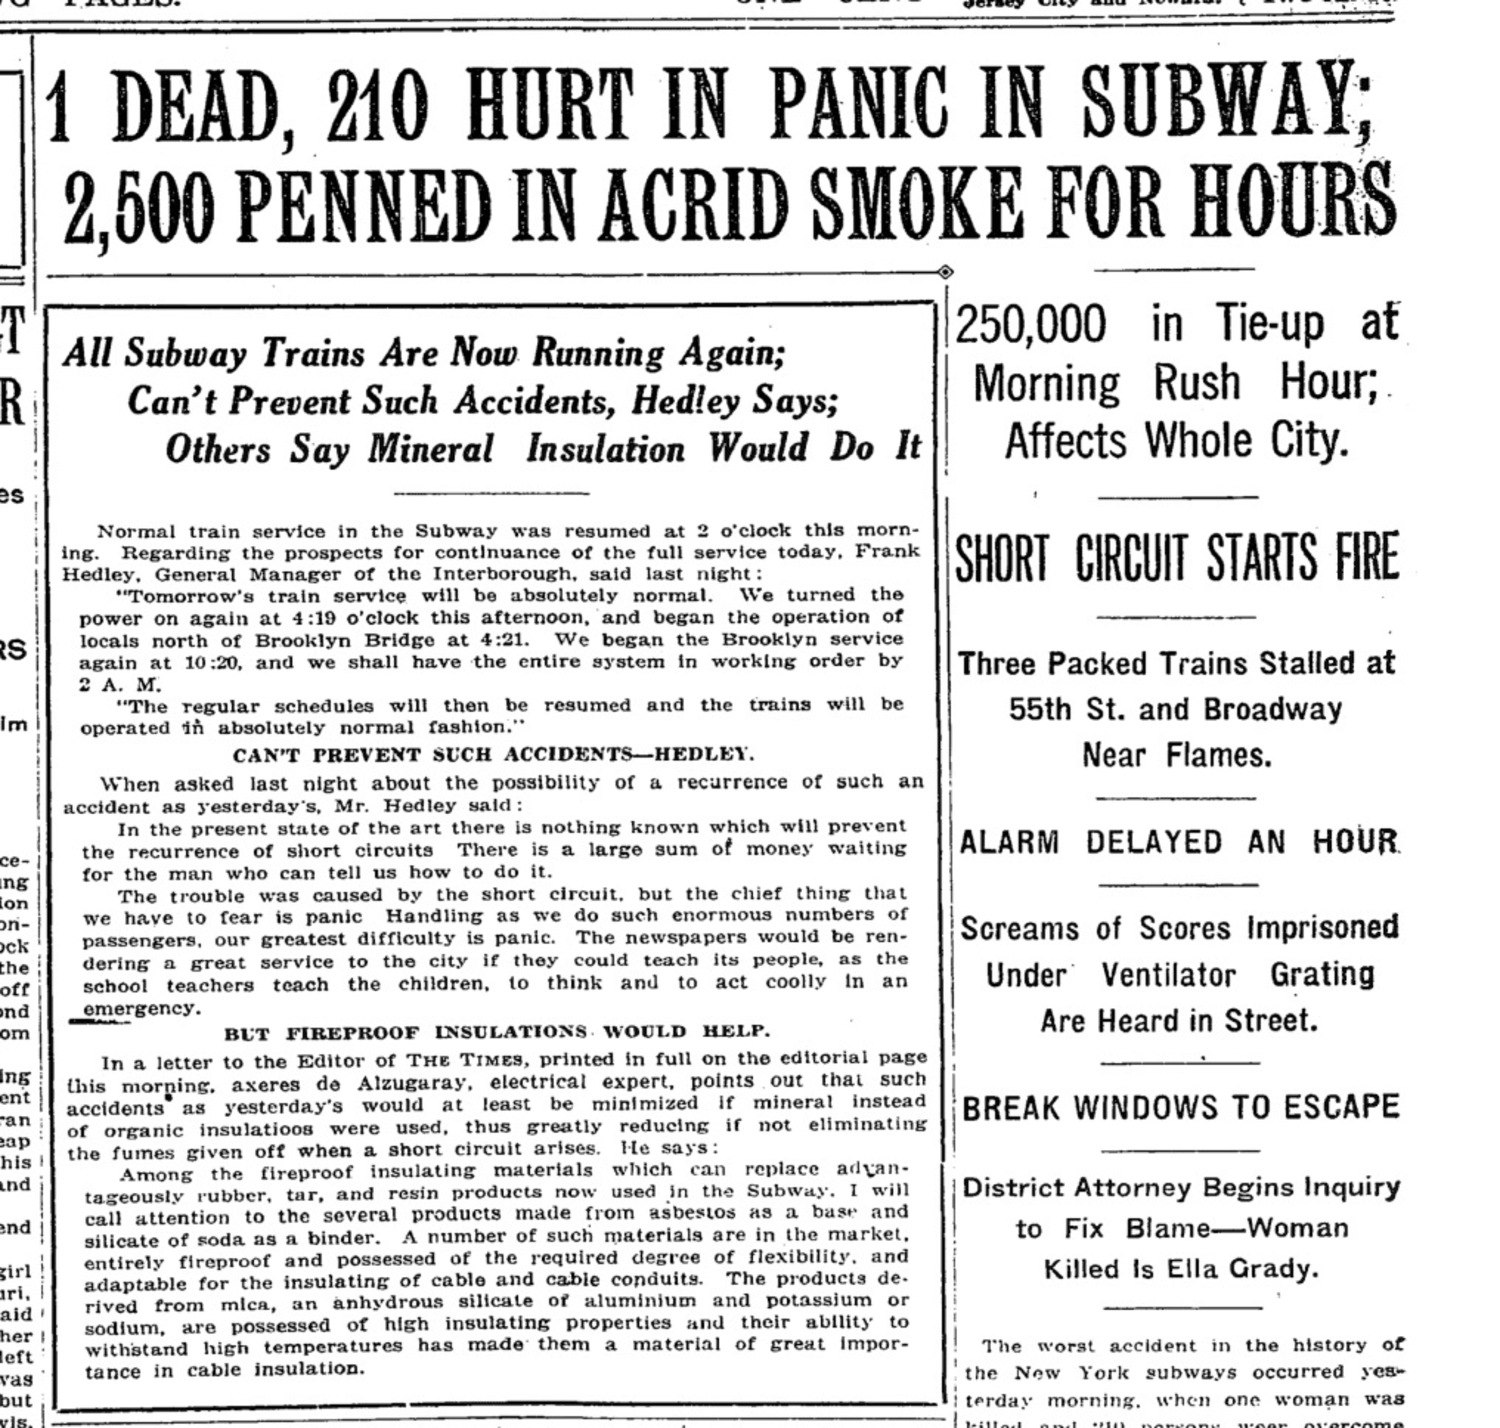 1 Dead, 210 Hurt in Panic in the Subway; 2,500 Penned in Acrid Smoke For Hours